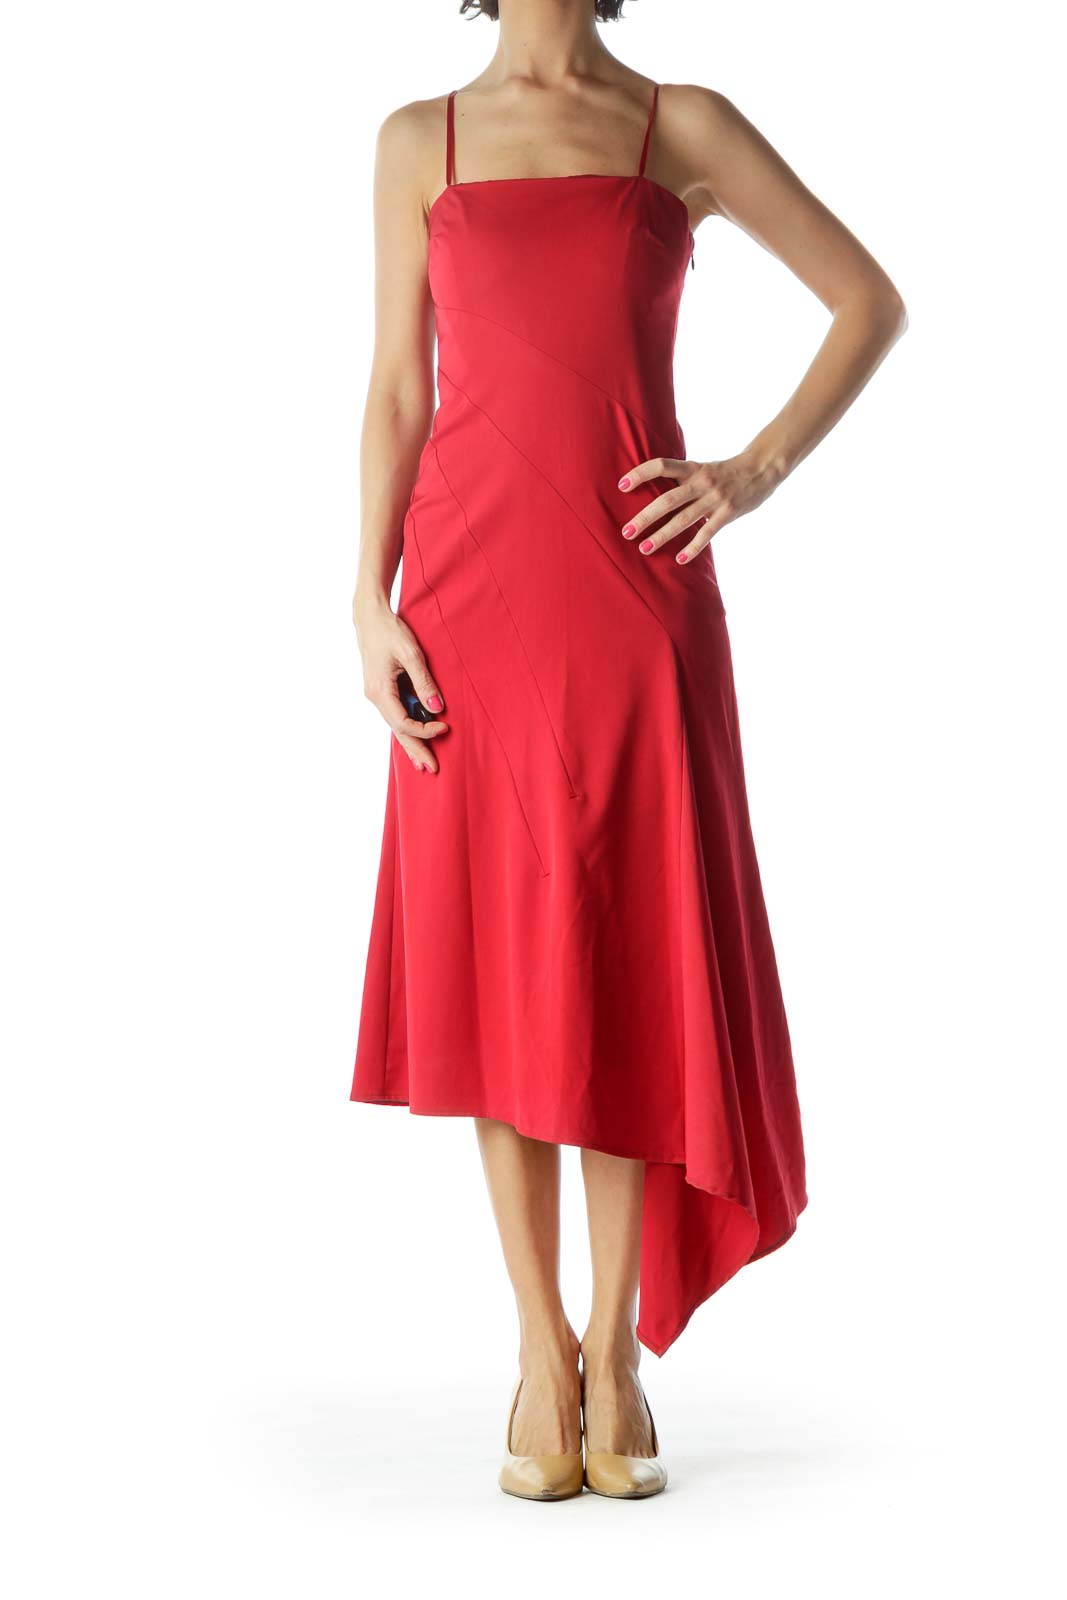 Red Strapless Asymmetric Cocktail Dress